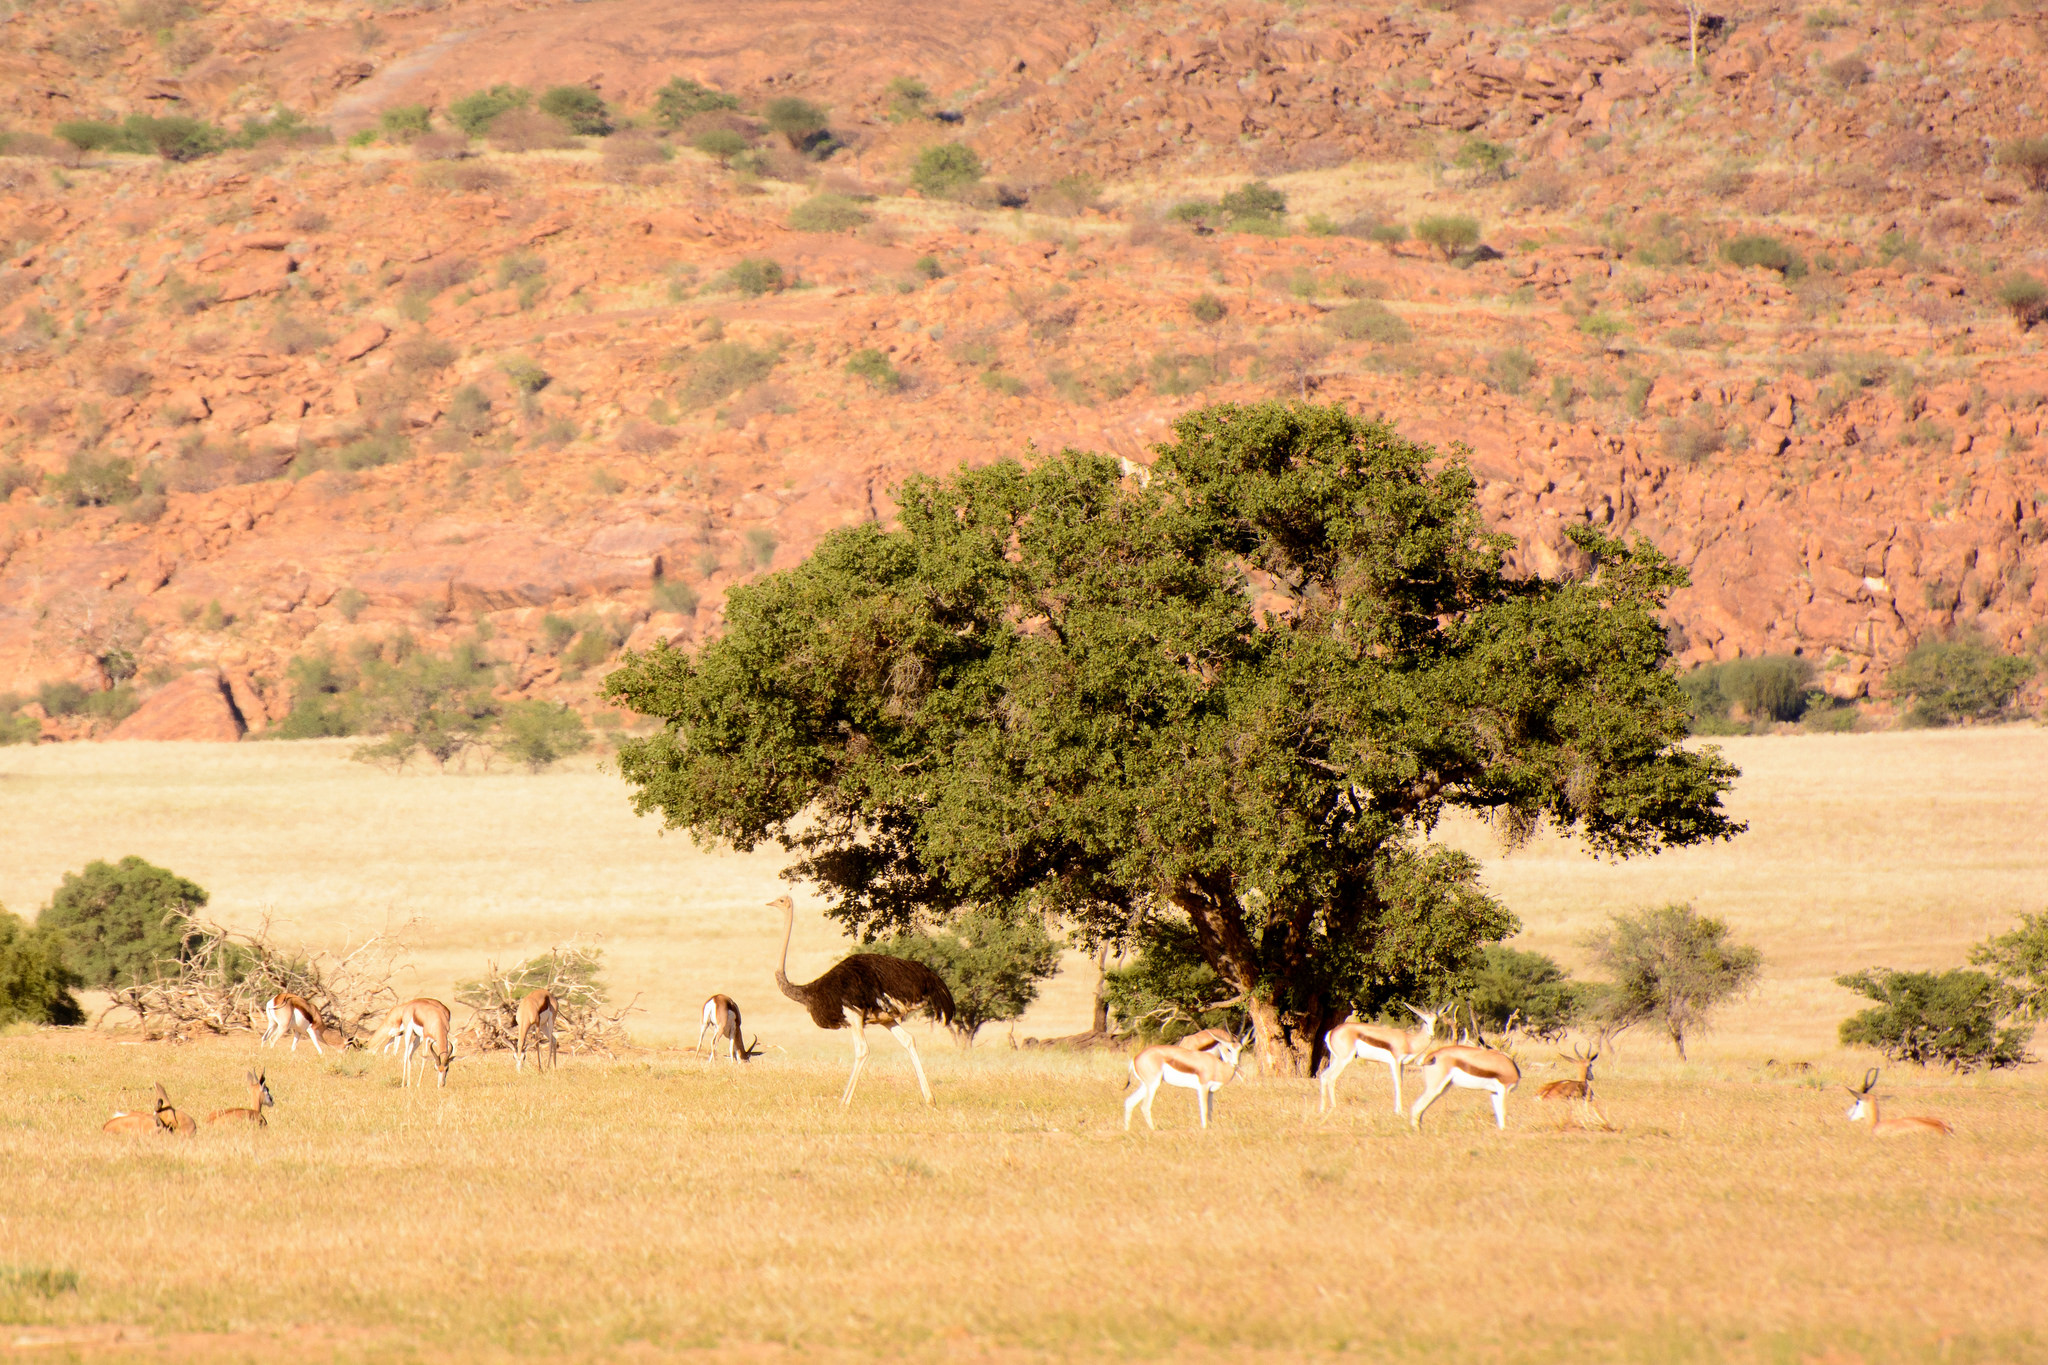 Springbok and Ostrich in Kunene, photo credit Alex Derr